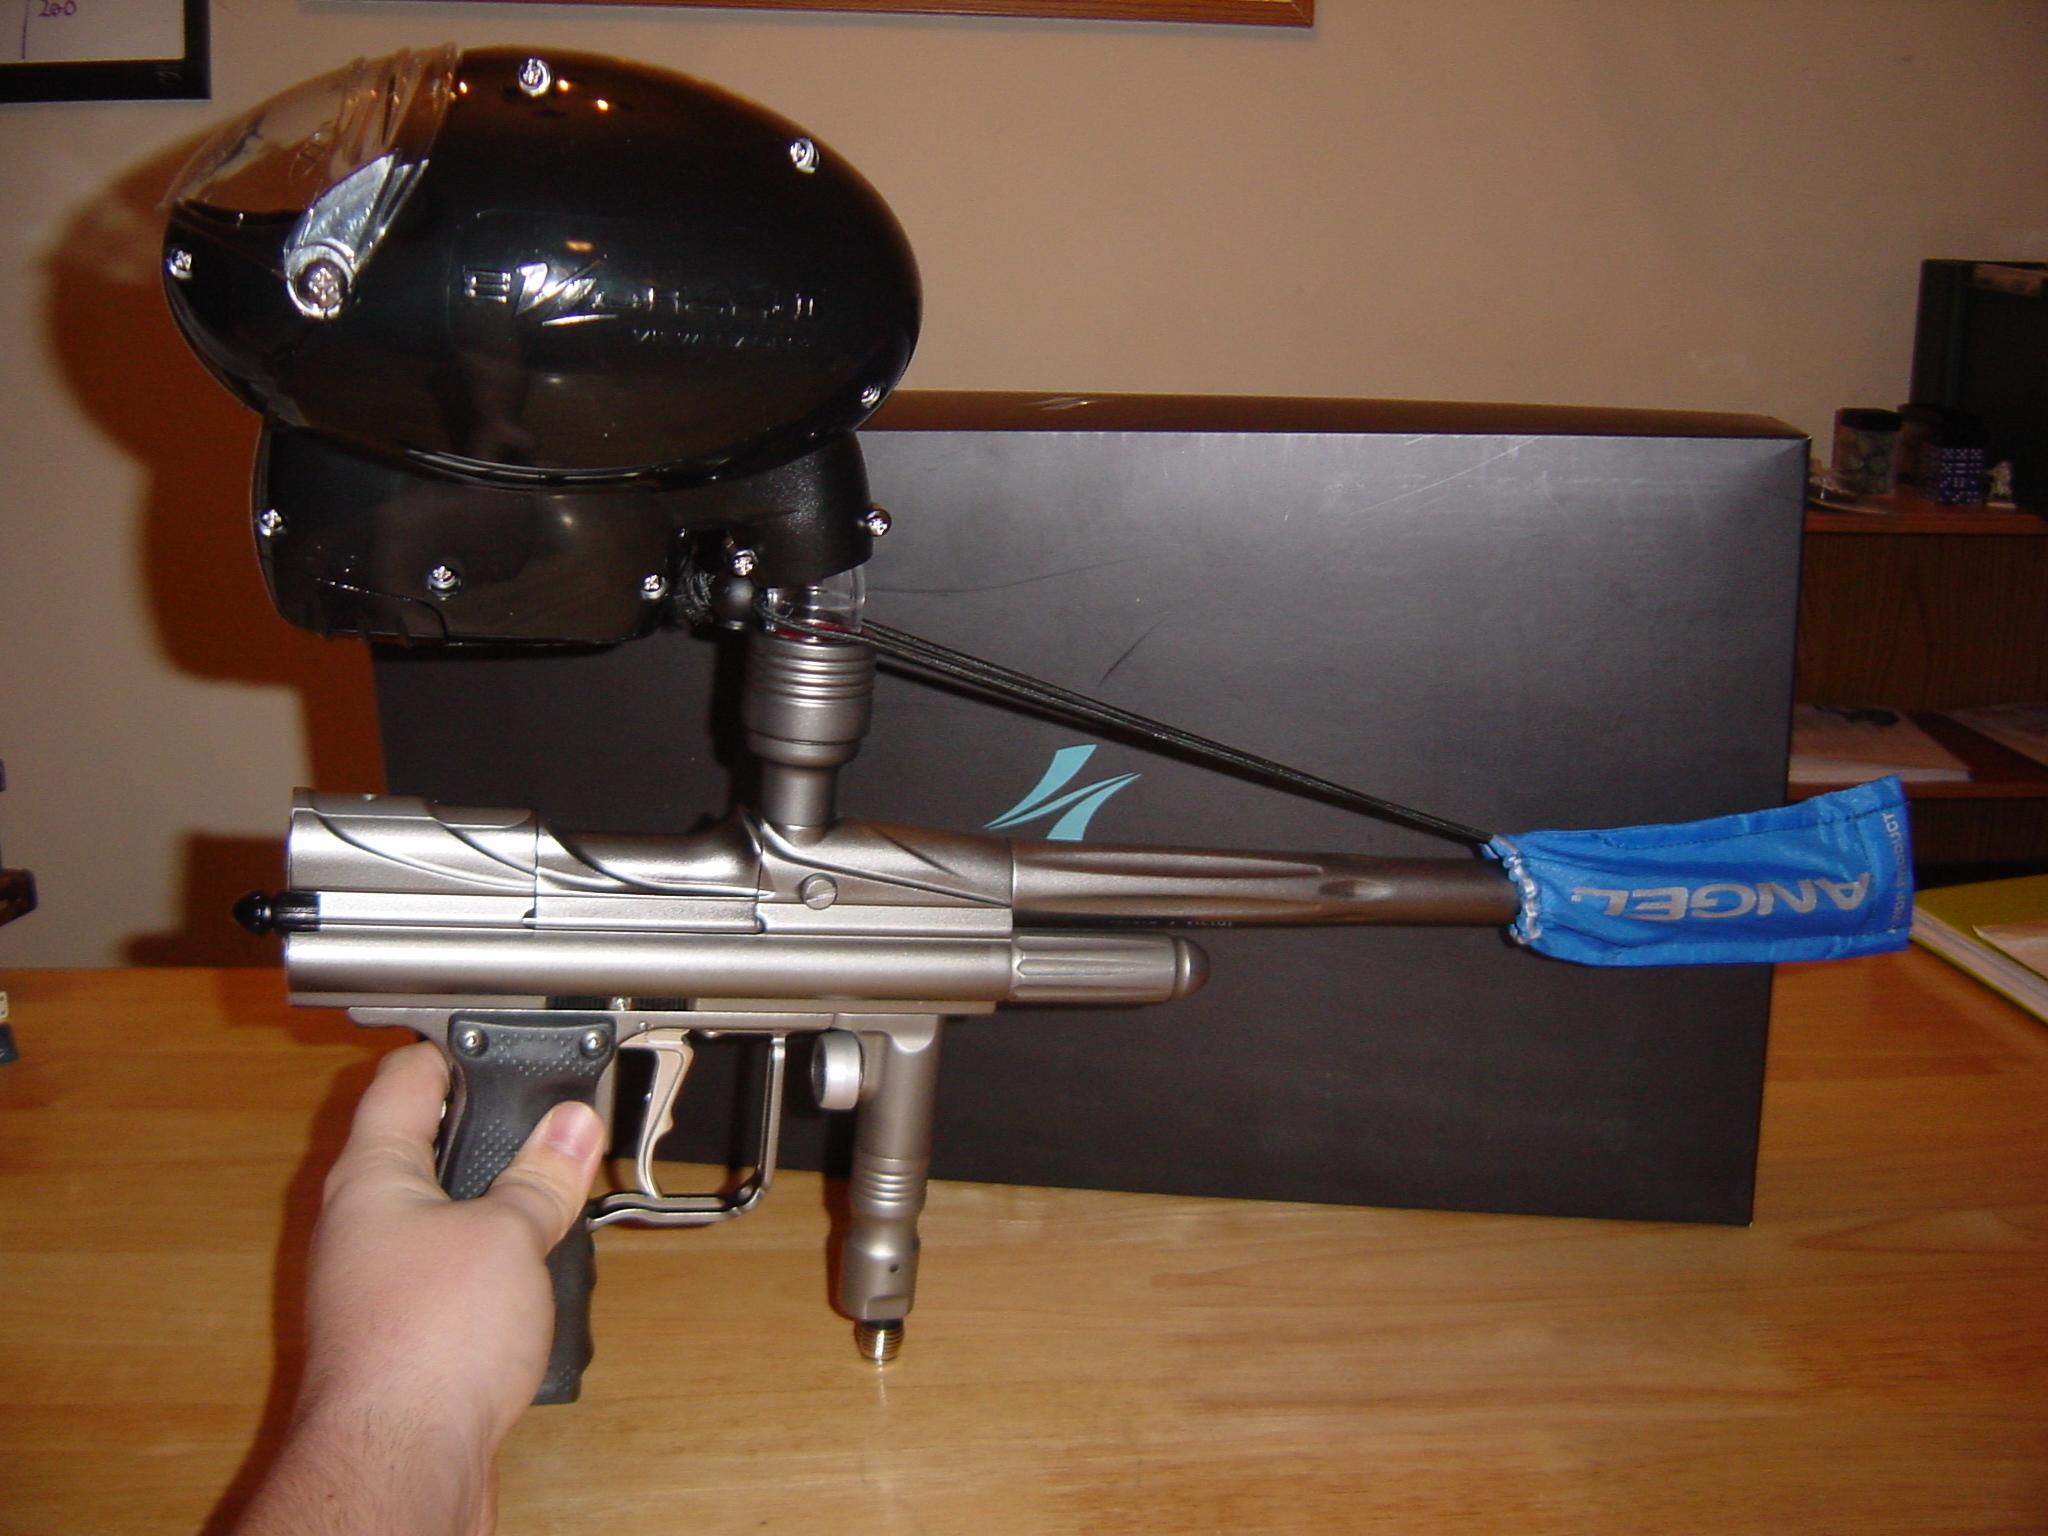 Electropneumatic paintball marker - Wikipedia